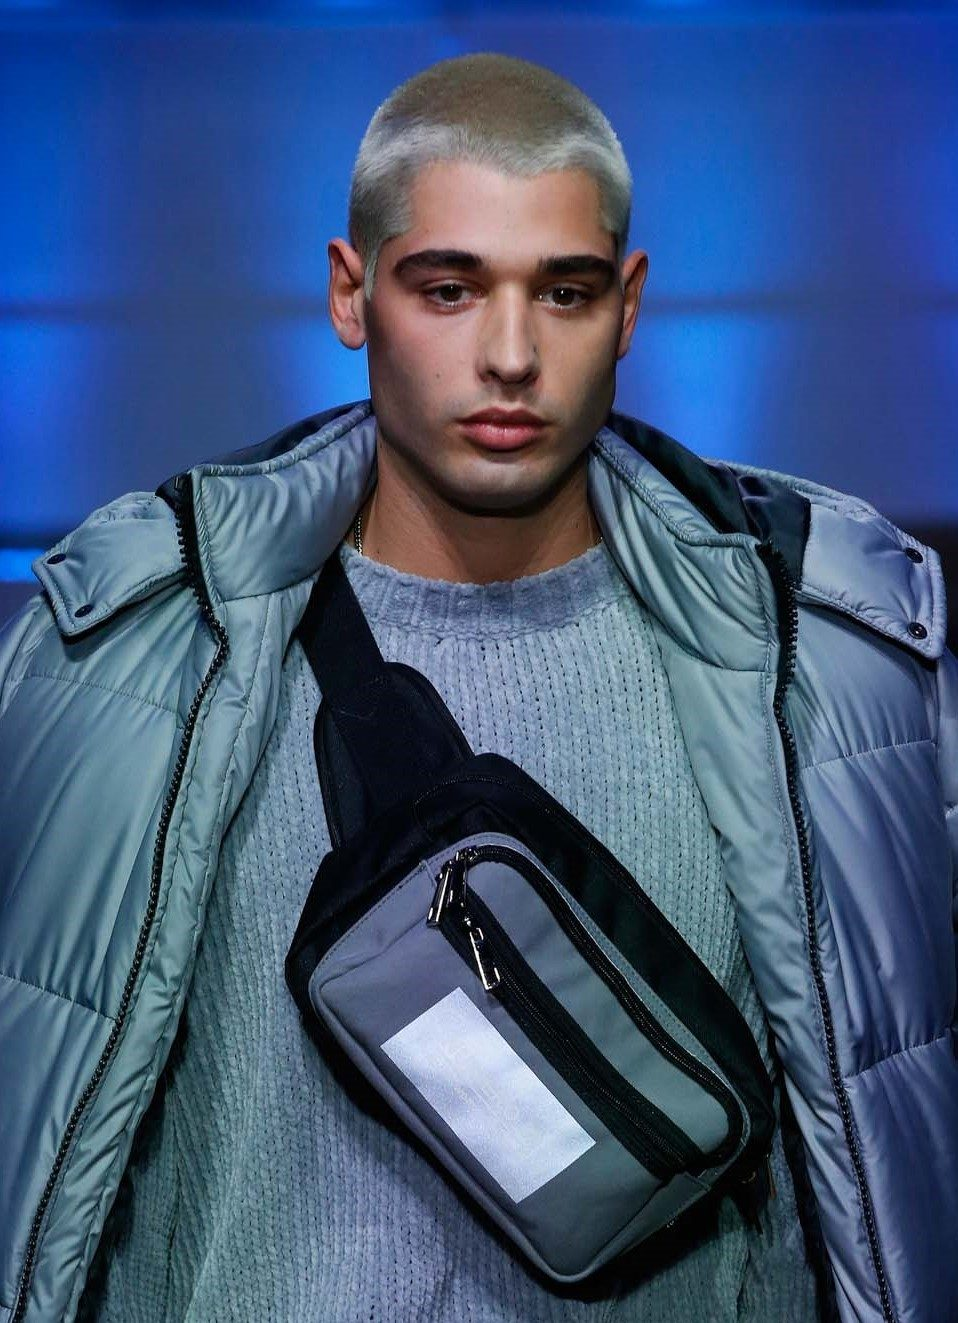 Milan Fashion Week Men's AW19: Male model on the runway with a blue tinted buzz cut, wearing a blue jumper and puffer jacket with a bumbag